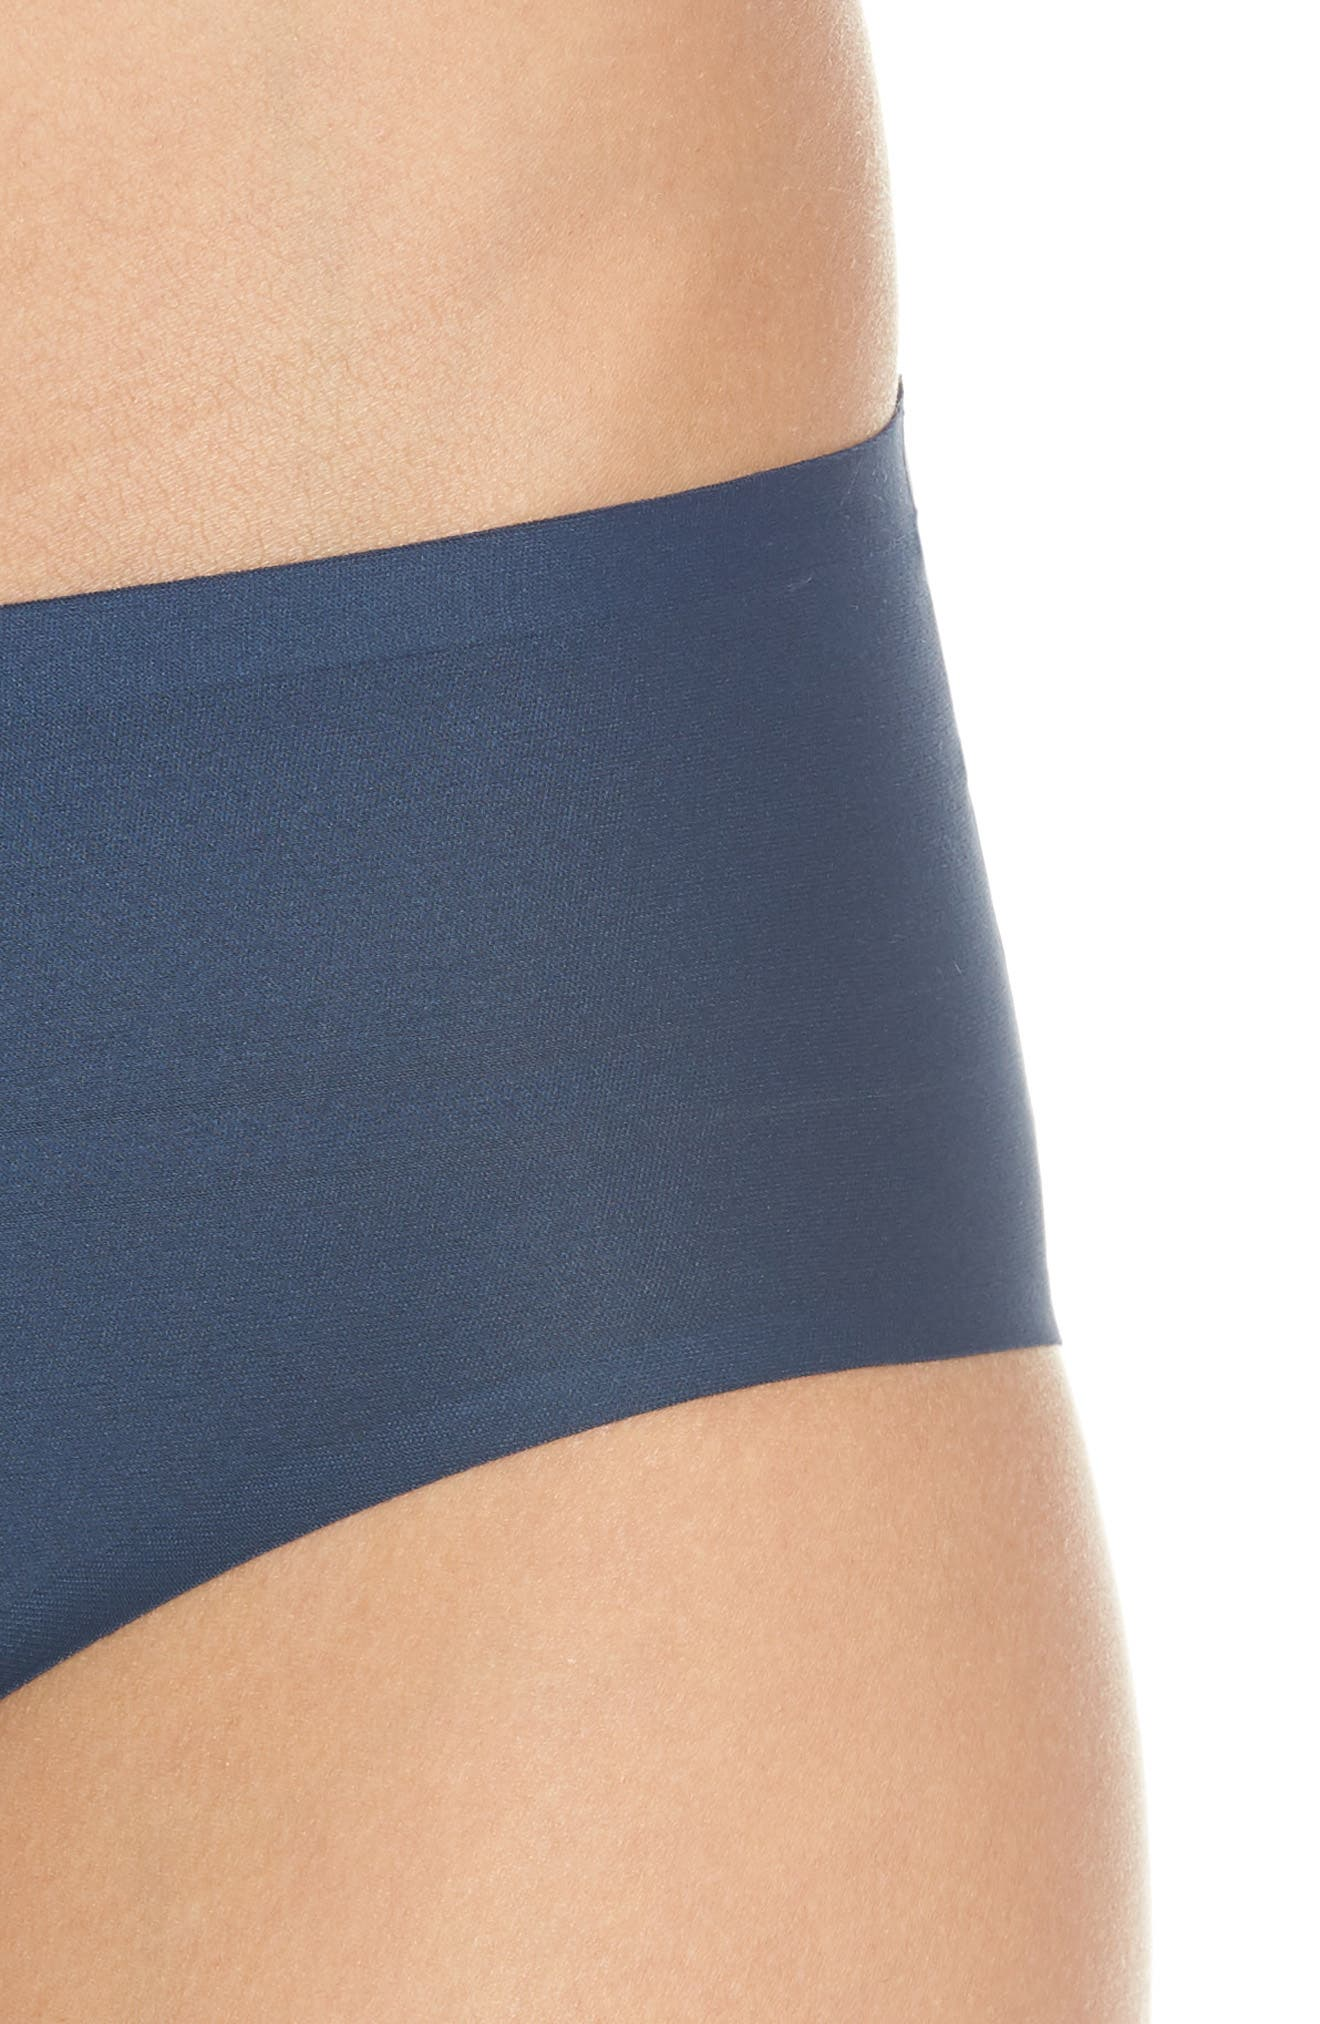 Soft Stretch Seamless Hipster Panties,                             Alternate thumbnail 4, color,                             DEEP BLUE